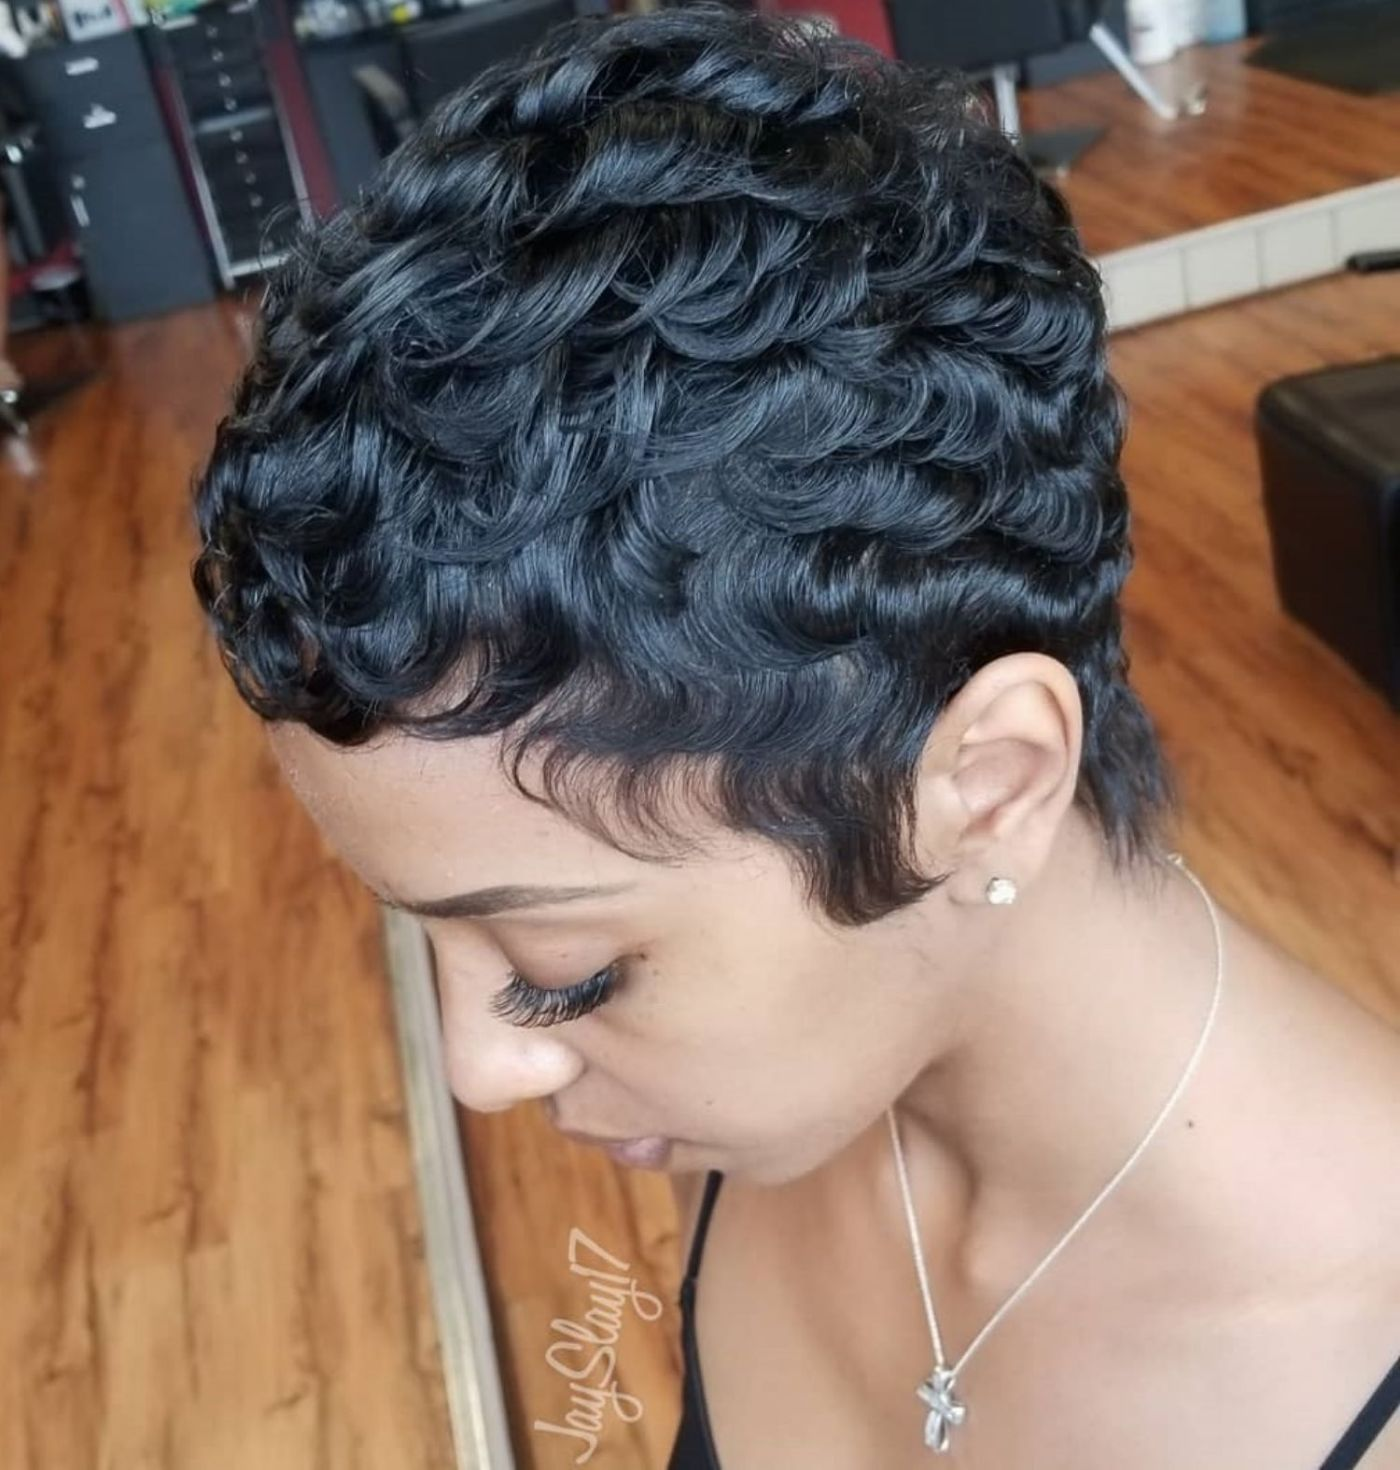 50 Most Captivating African American Short Hairstyles 50 African American C Short Hair Styles Pixie Short Hair Styles African American Short Hair Styles